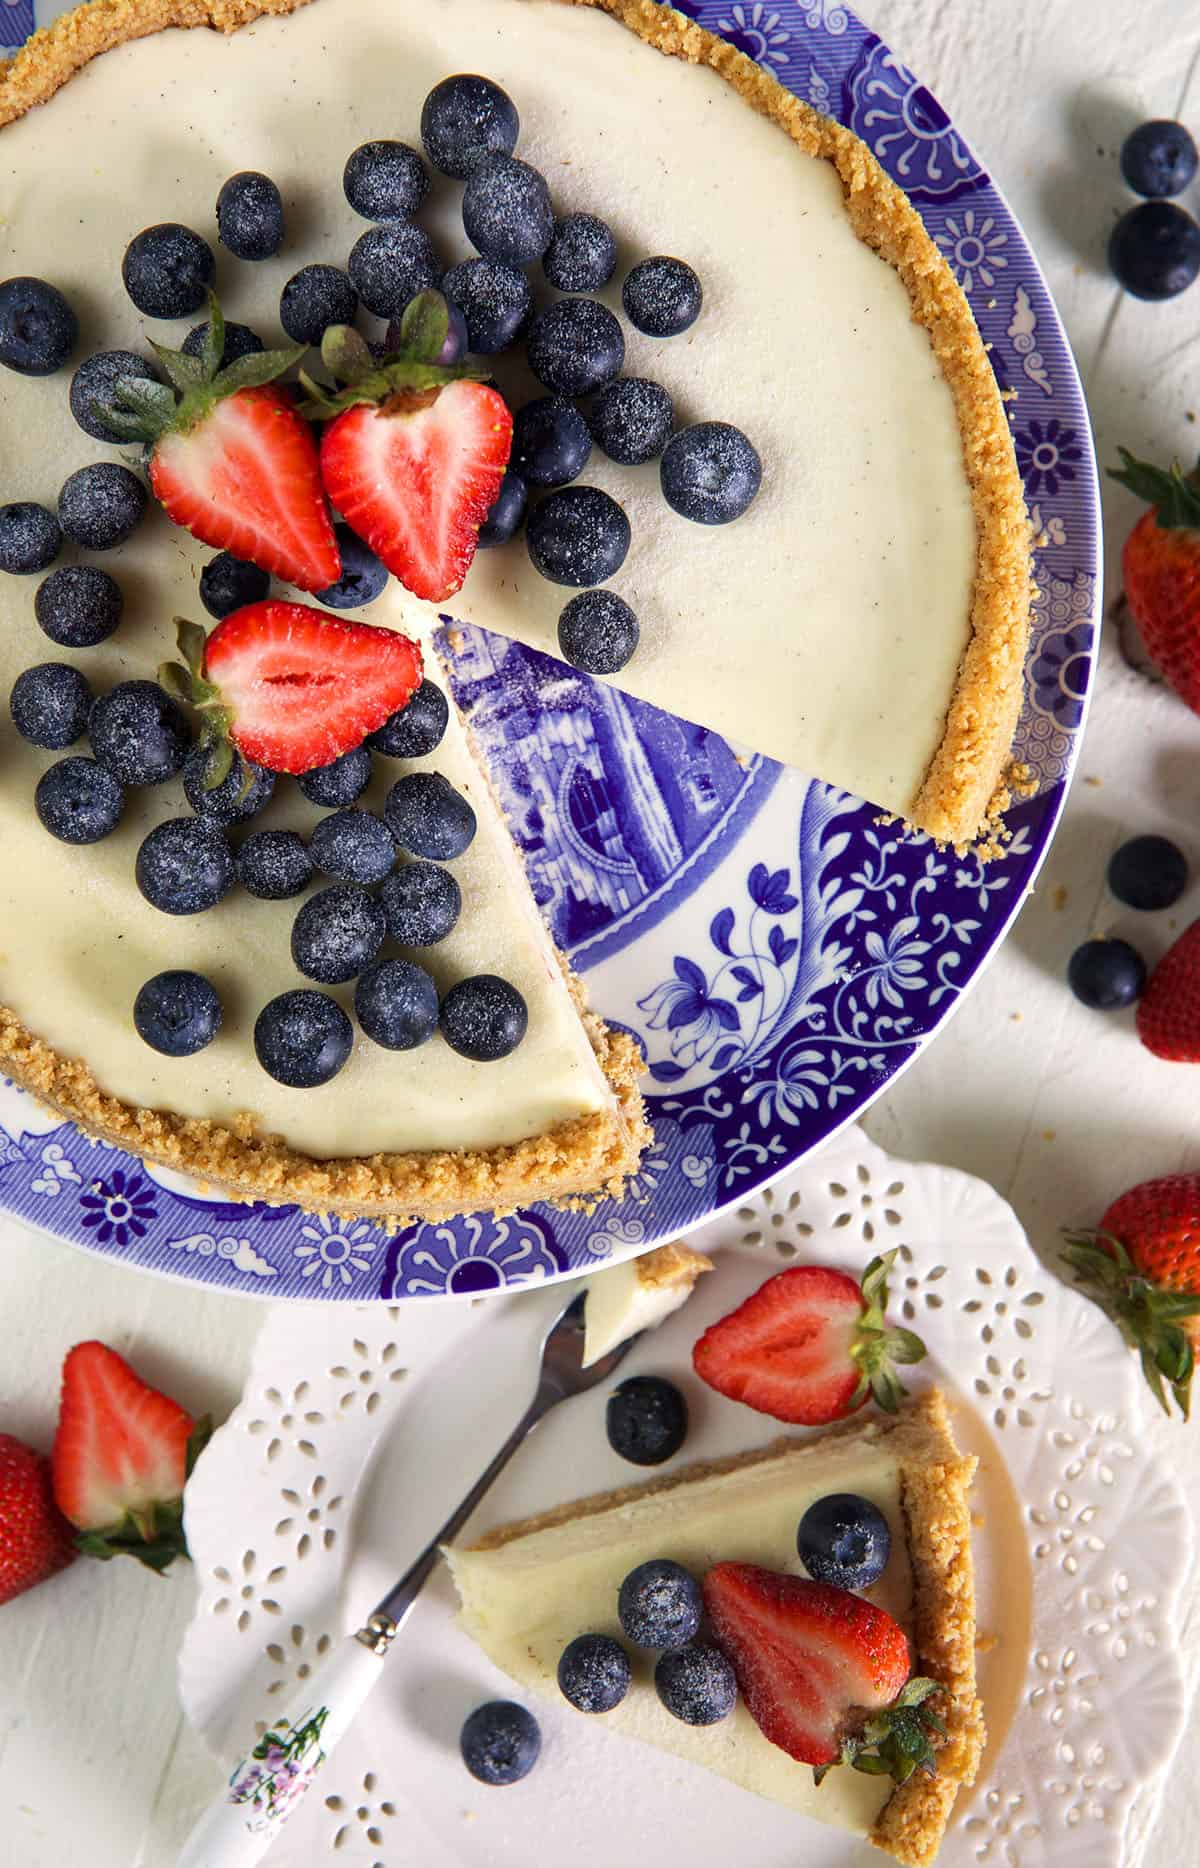 No Bake Cheesecake with blueberries and strawberries on top served on a blue and white cake plate.